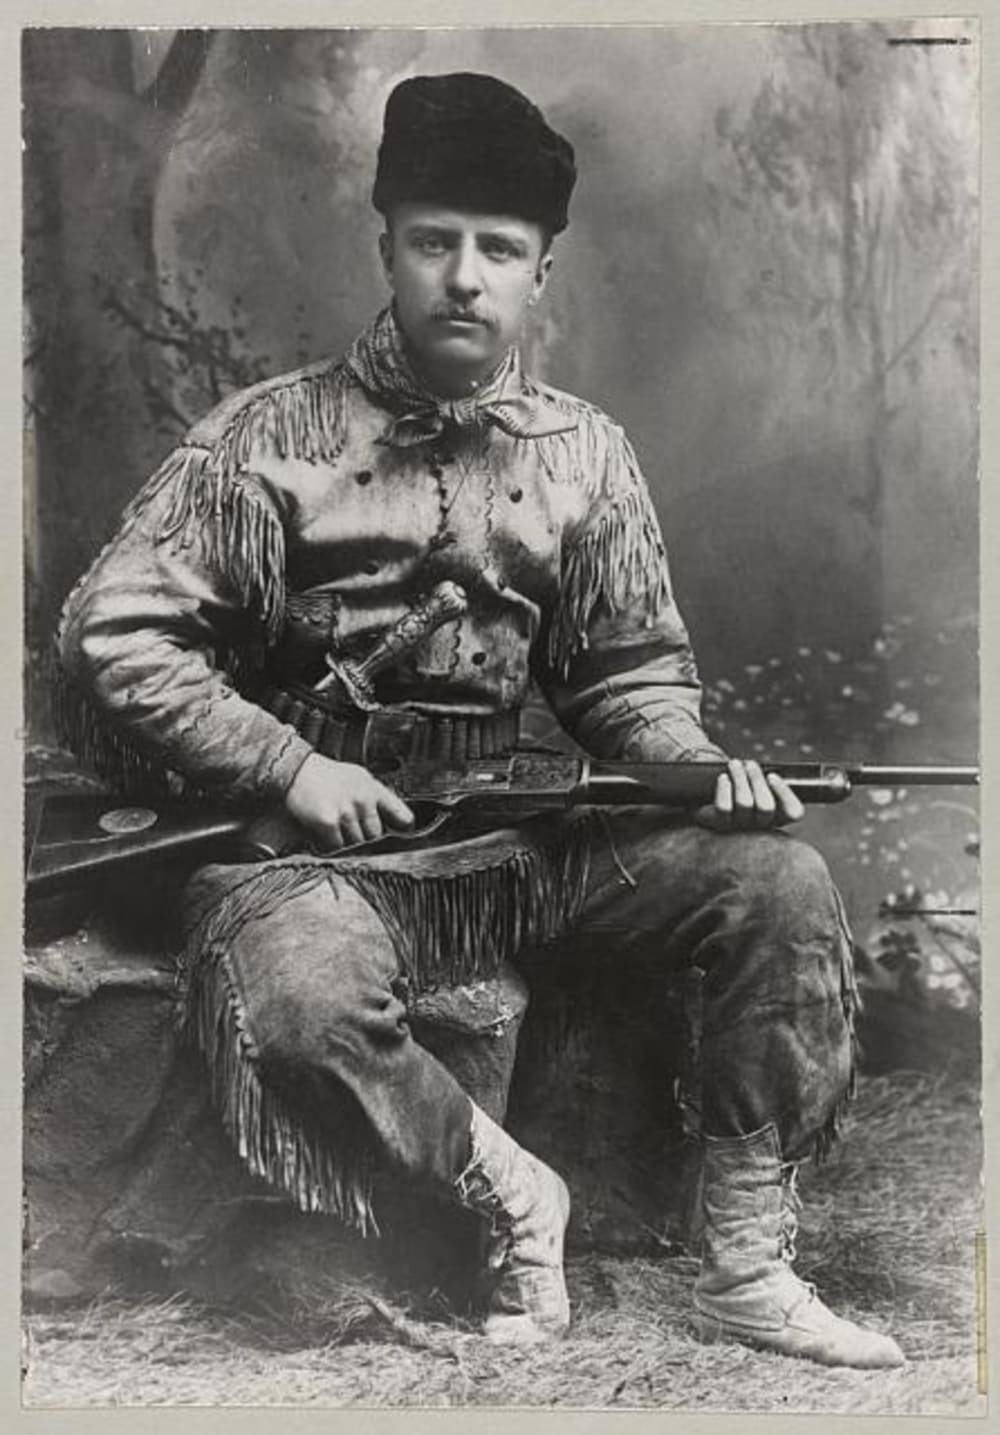 8. Theodore Roosevelt Poses in His Hunting Suit